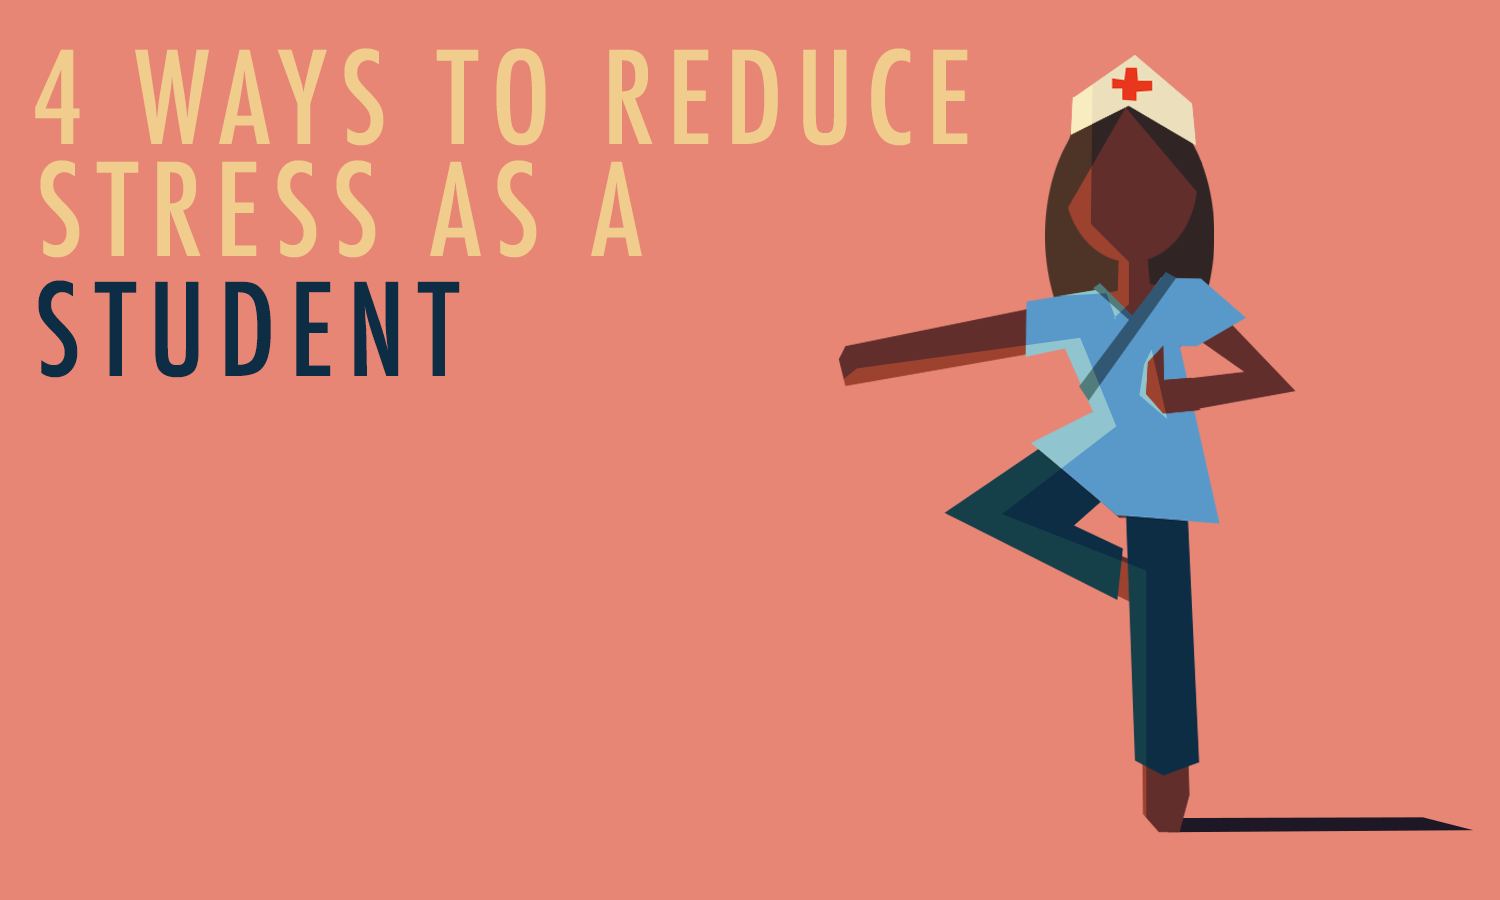 4 Ways to Reduce Stress as a Student